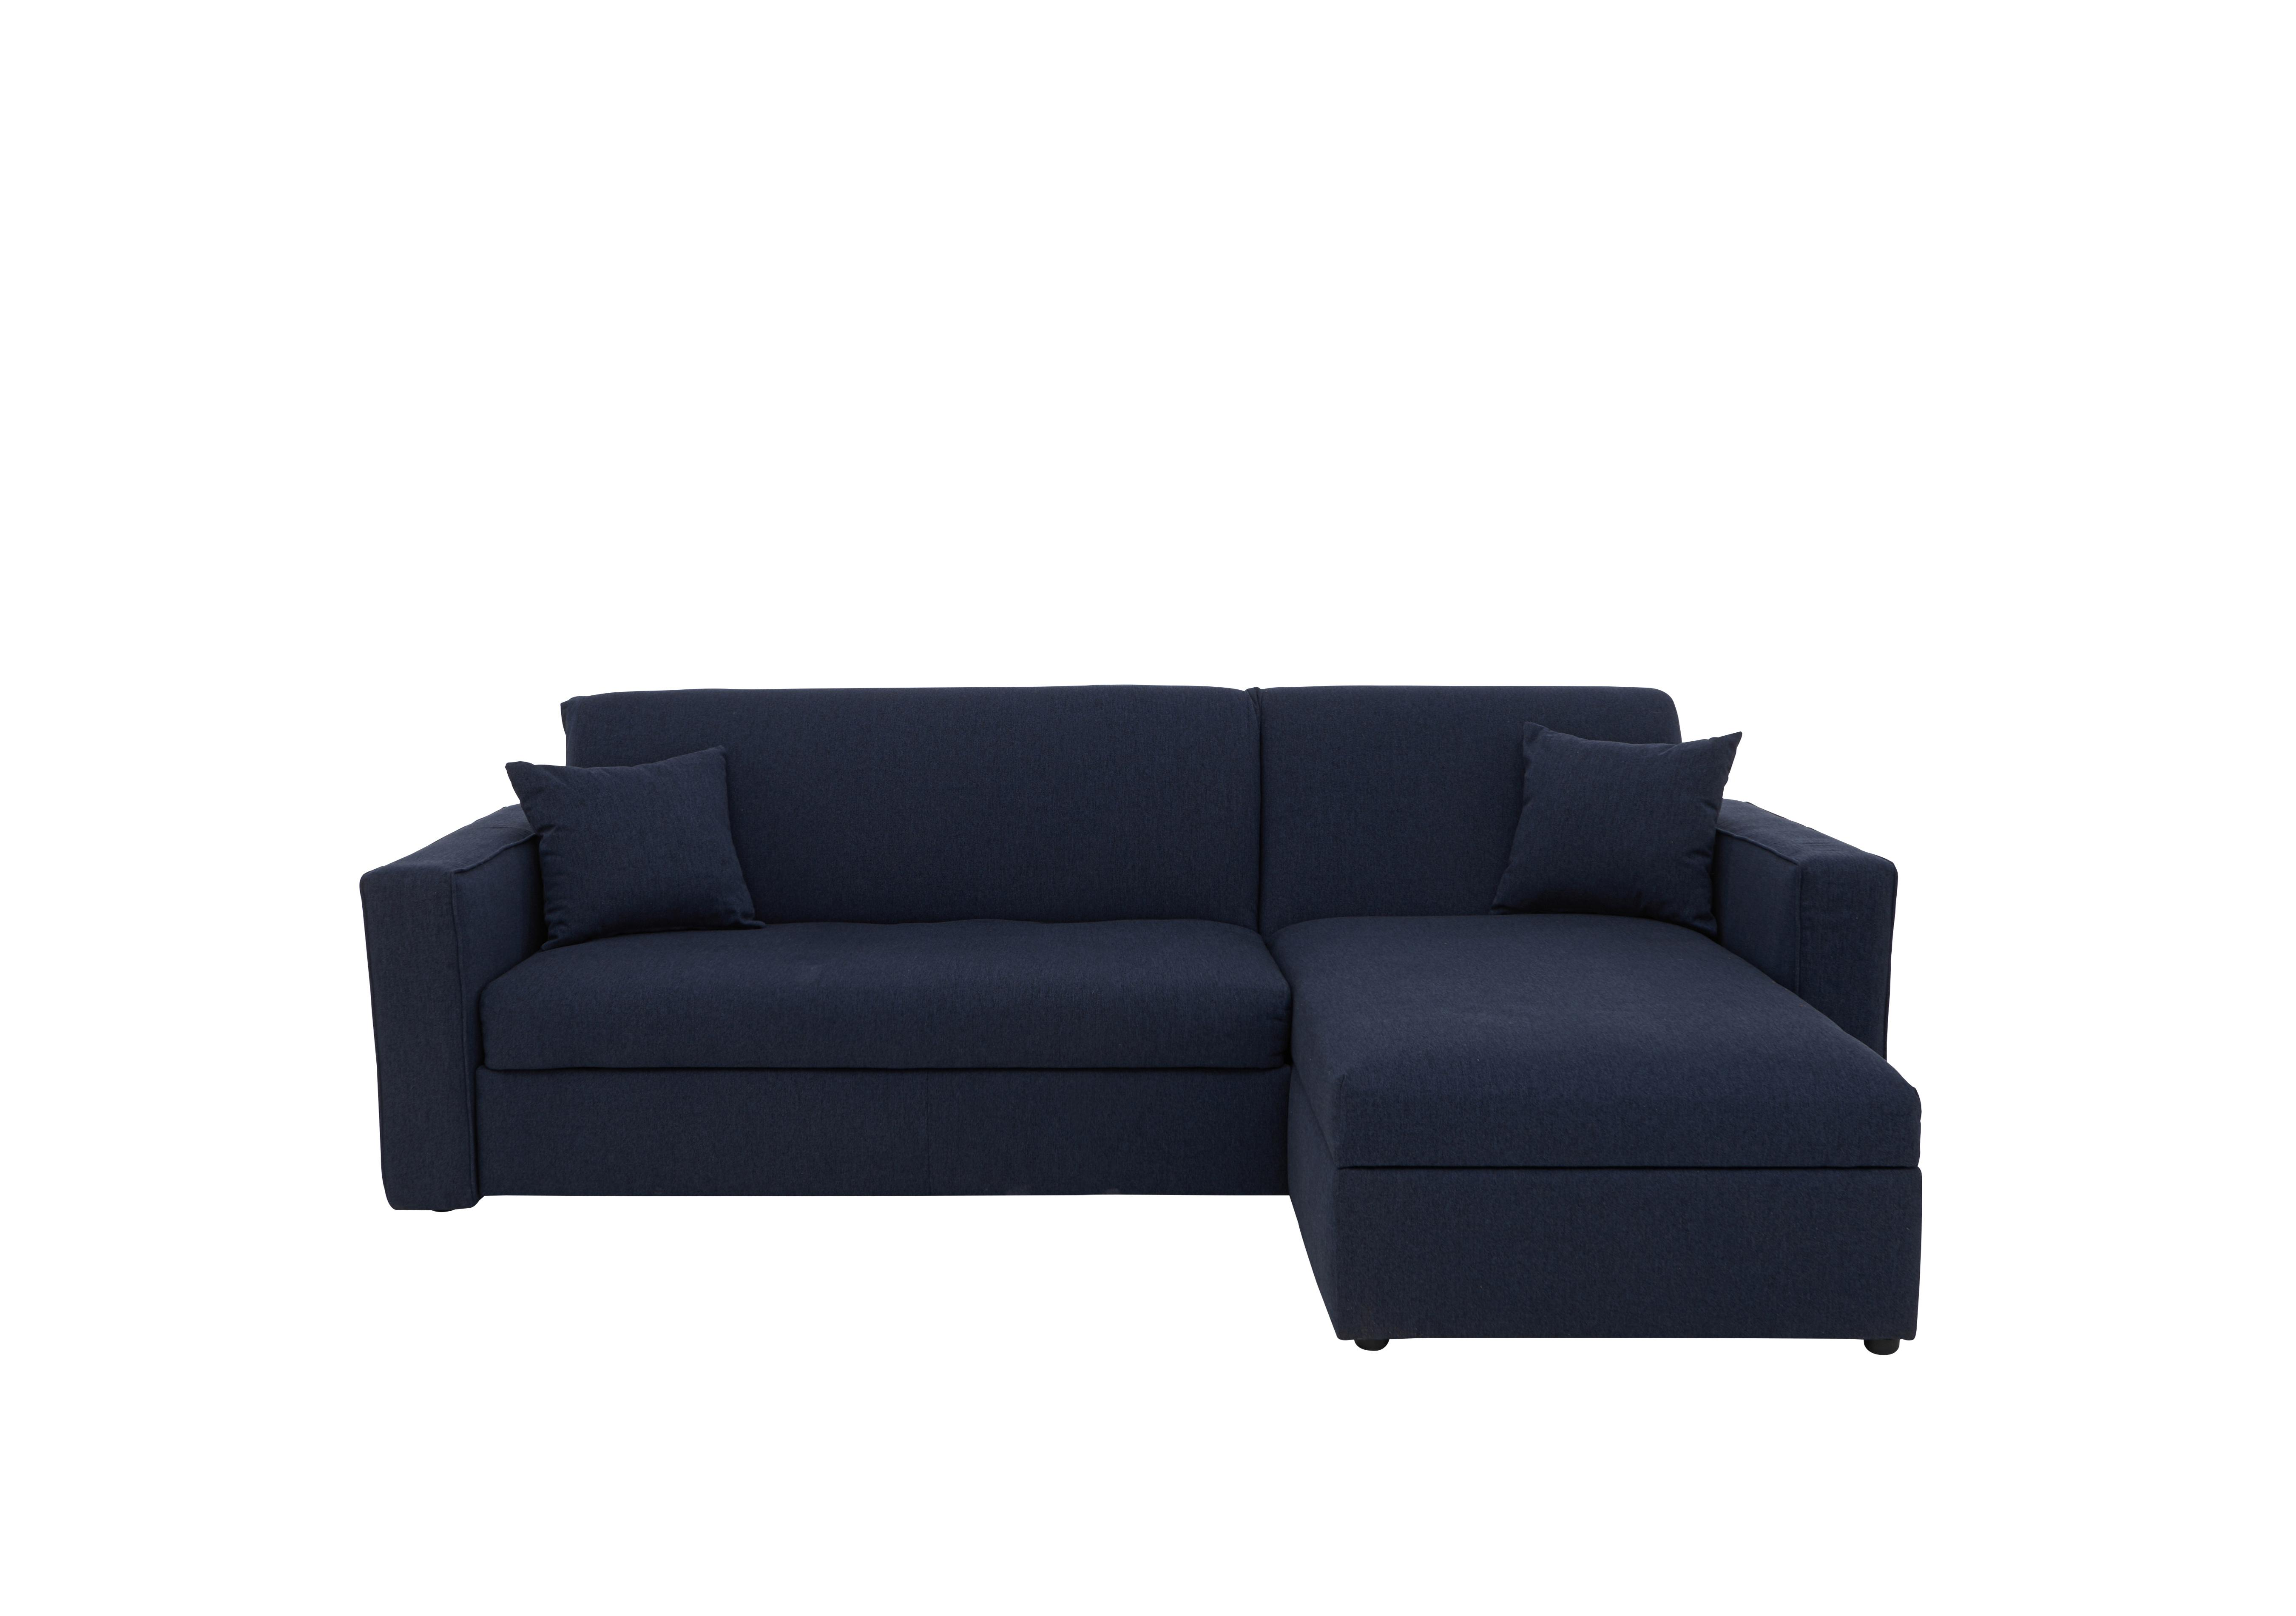 Versatile 2 Seater Fabric Chaise Sofa Bed With Storage With Box Arms Furniture Village